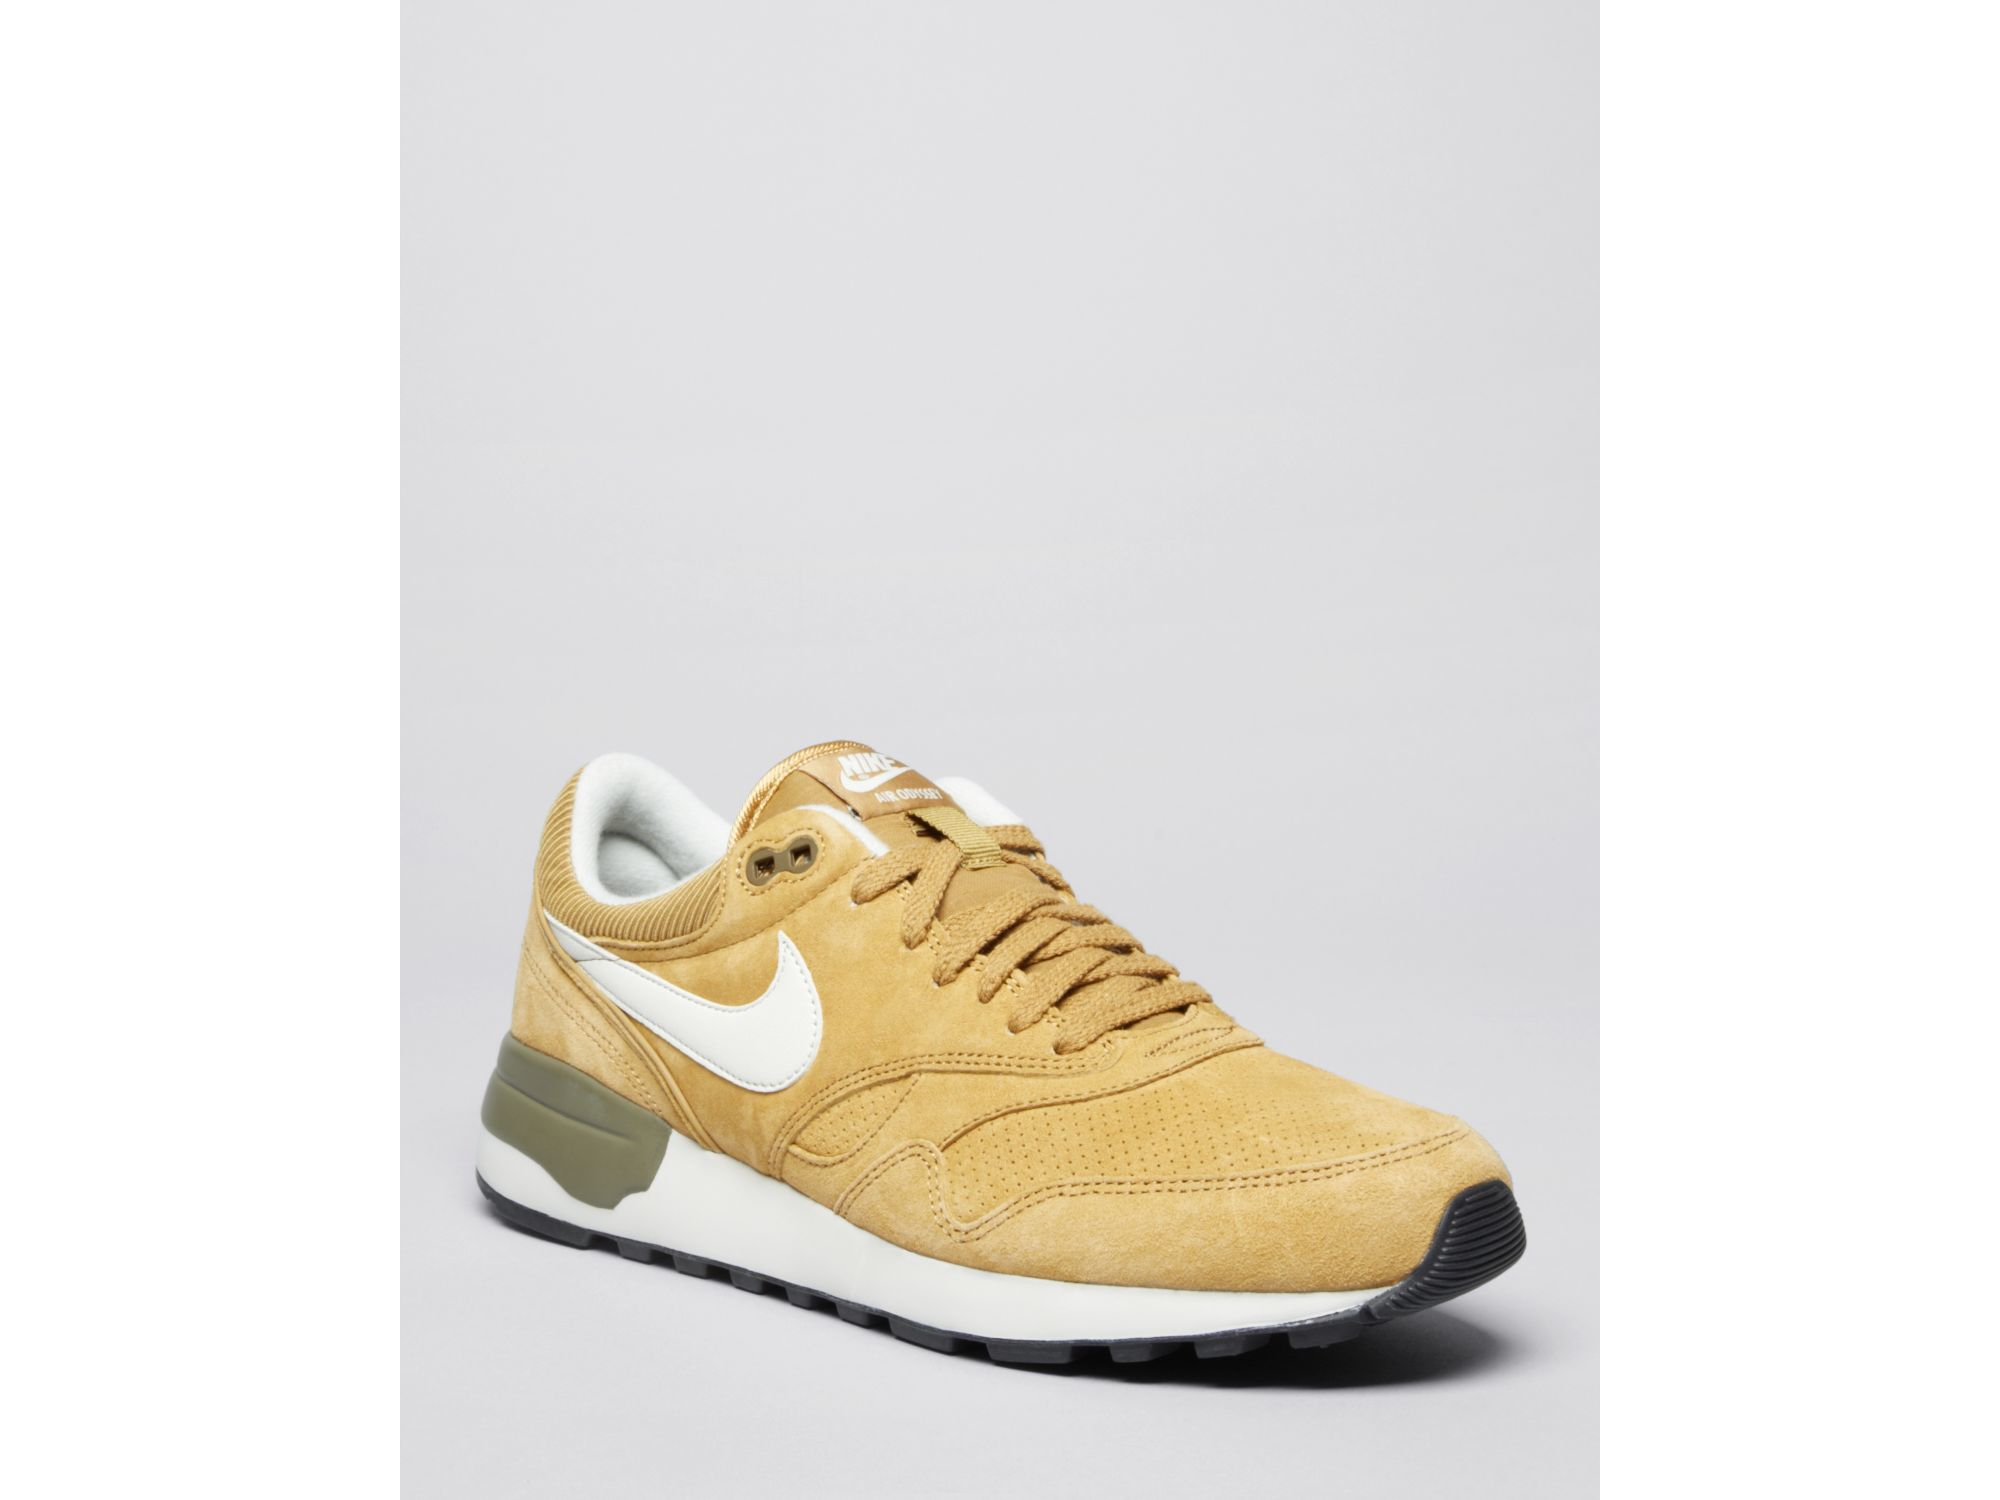 best website 588c0 8edbf Lyst - Nike Air Odyssey Leather Sneakers in Yellow for Men